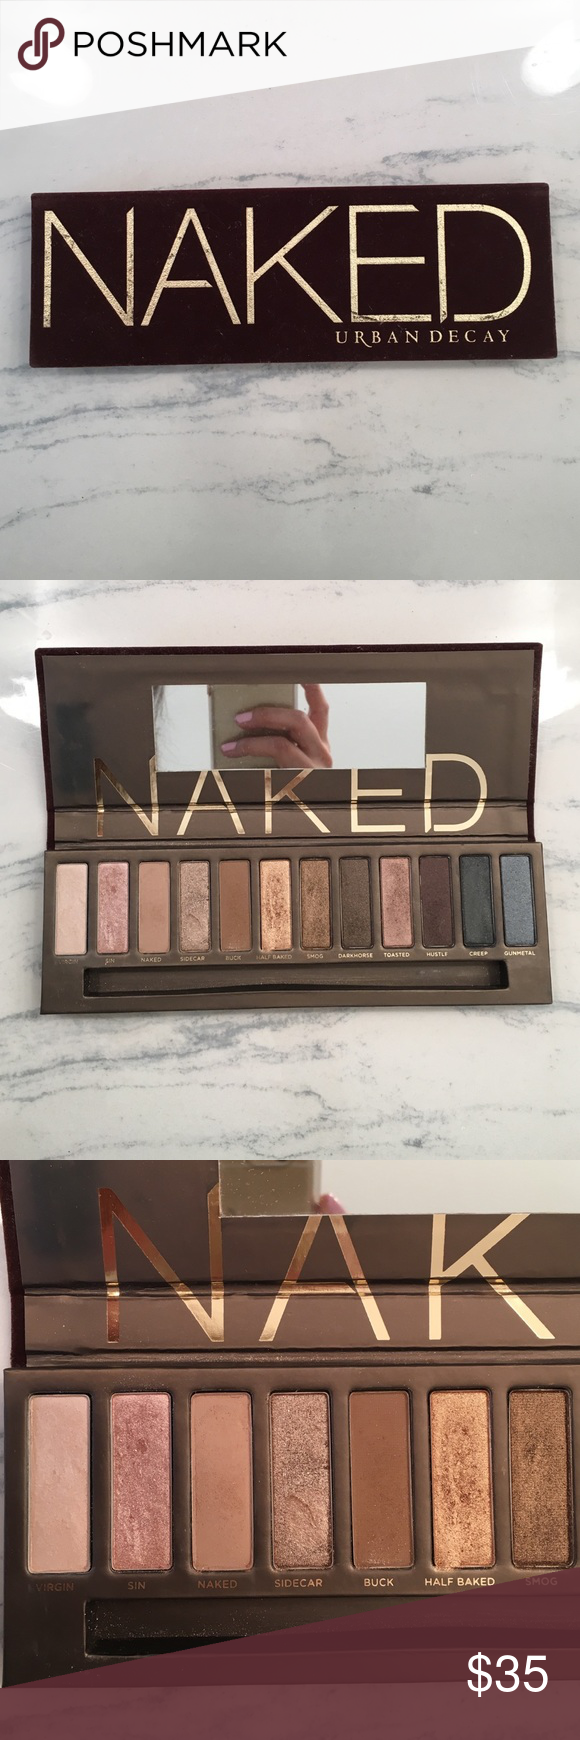 Urban Decay NAKED palette Authentic Urban Decay Naked palette. Barely used, some colors haven't been used at all. Shadows are in excellent condition. No brush or box. Purchased at Sephora. Urban Decay Makeup Eyeshadow